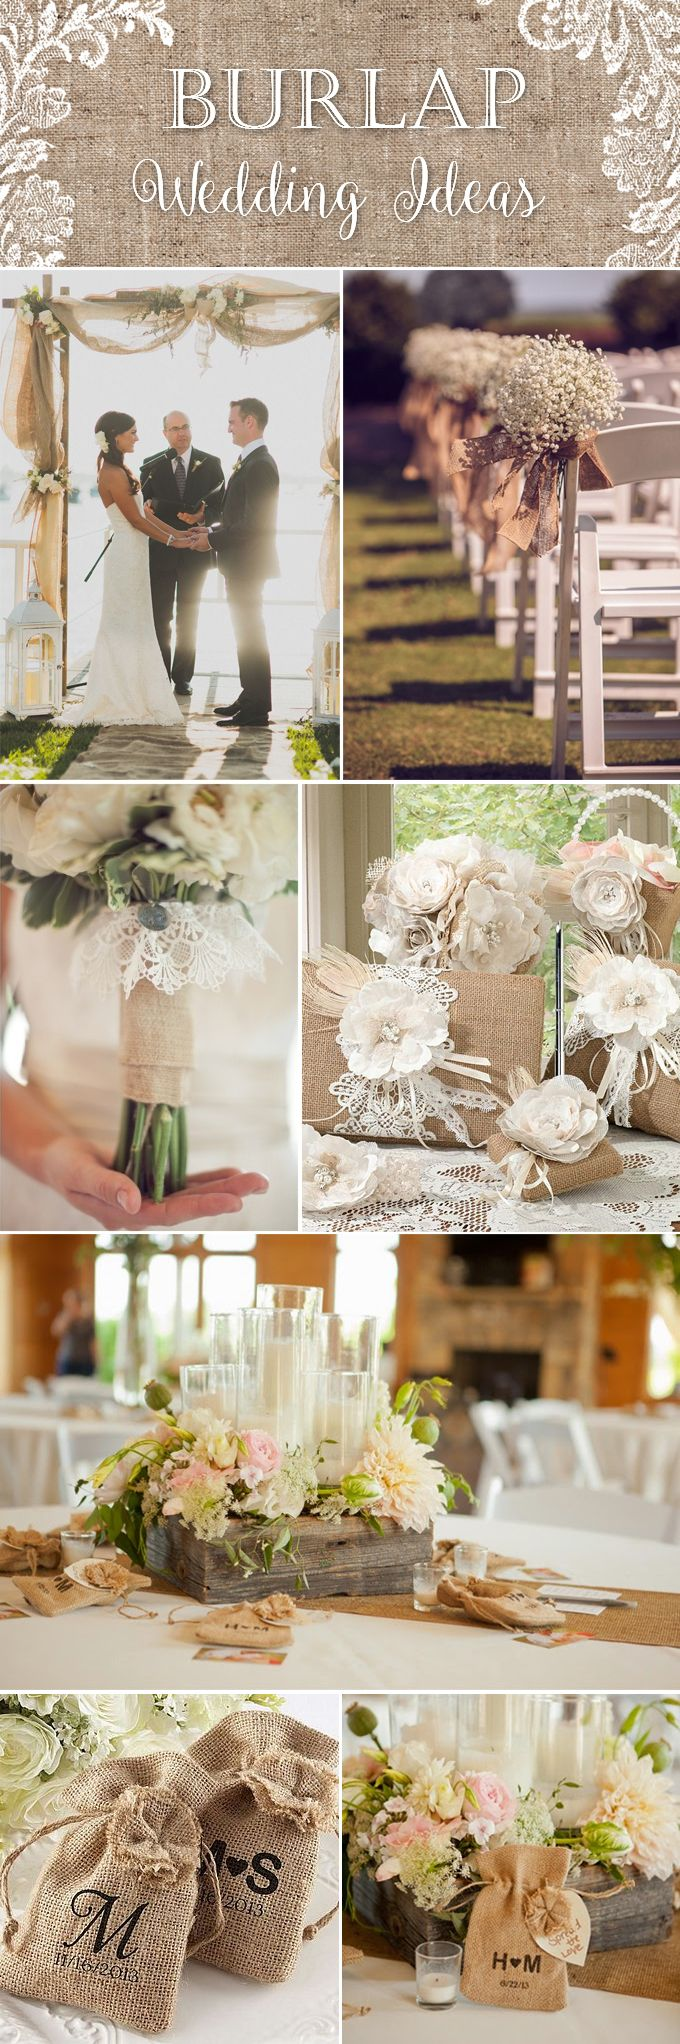 Burlap wedding decorations and ideas for the country, rustic, DIY, and casual-chic bride and groom. Find more burlap decor here: http://myweddingreceptionideas.com/burlap-decorations-accessories-favors.asp